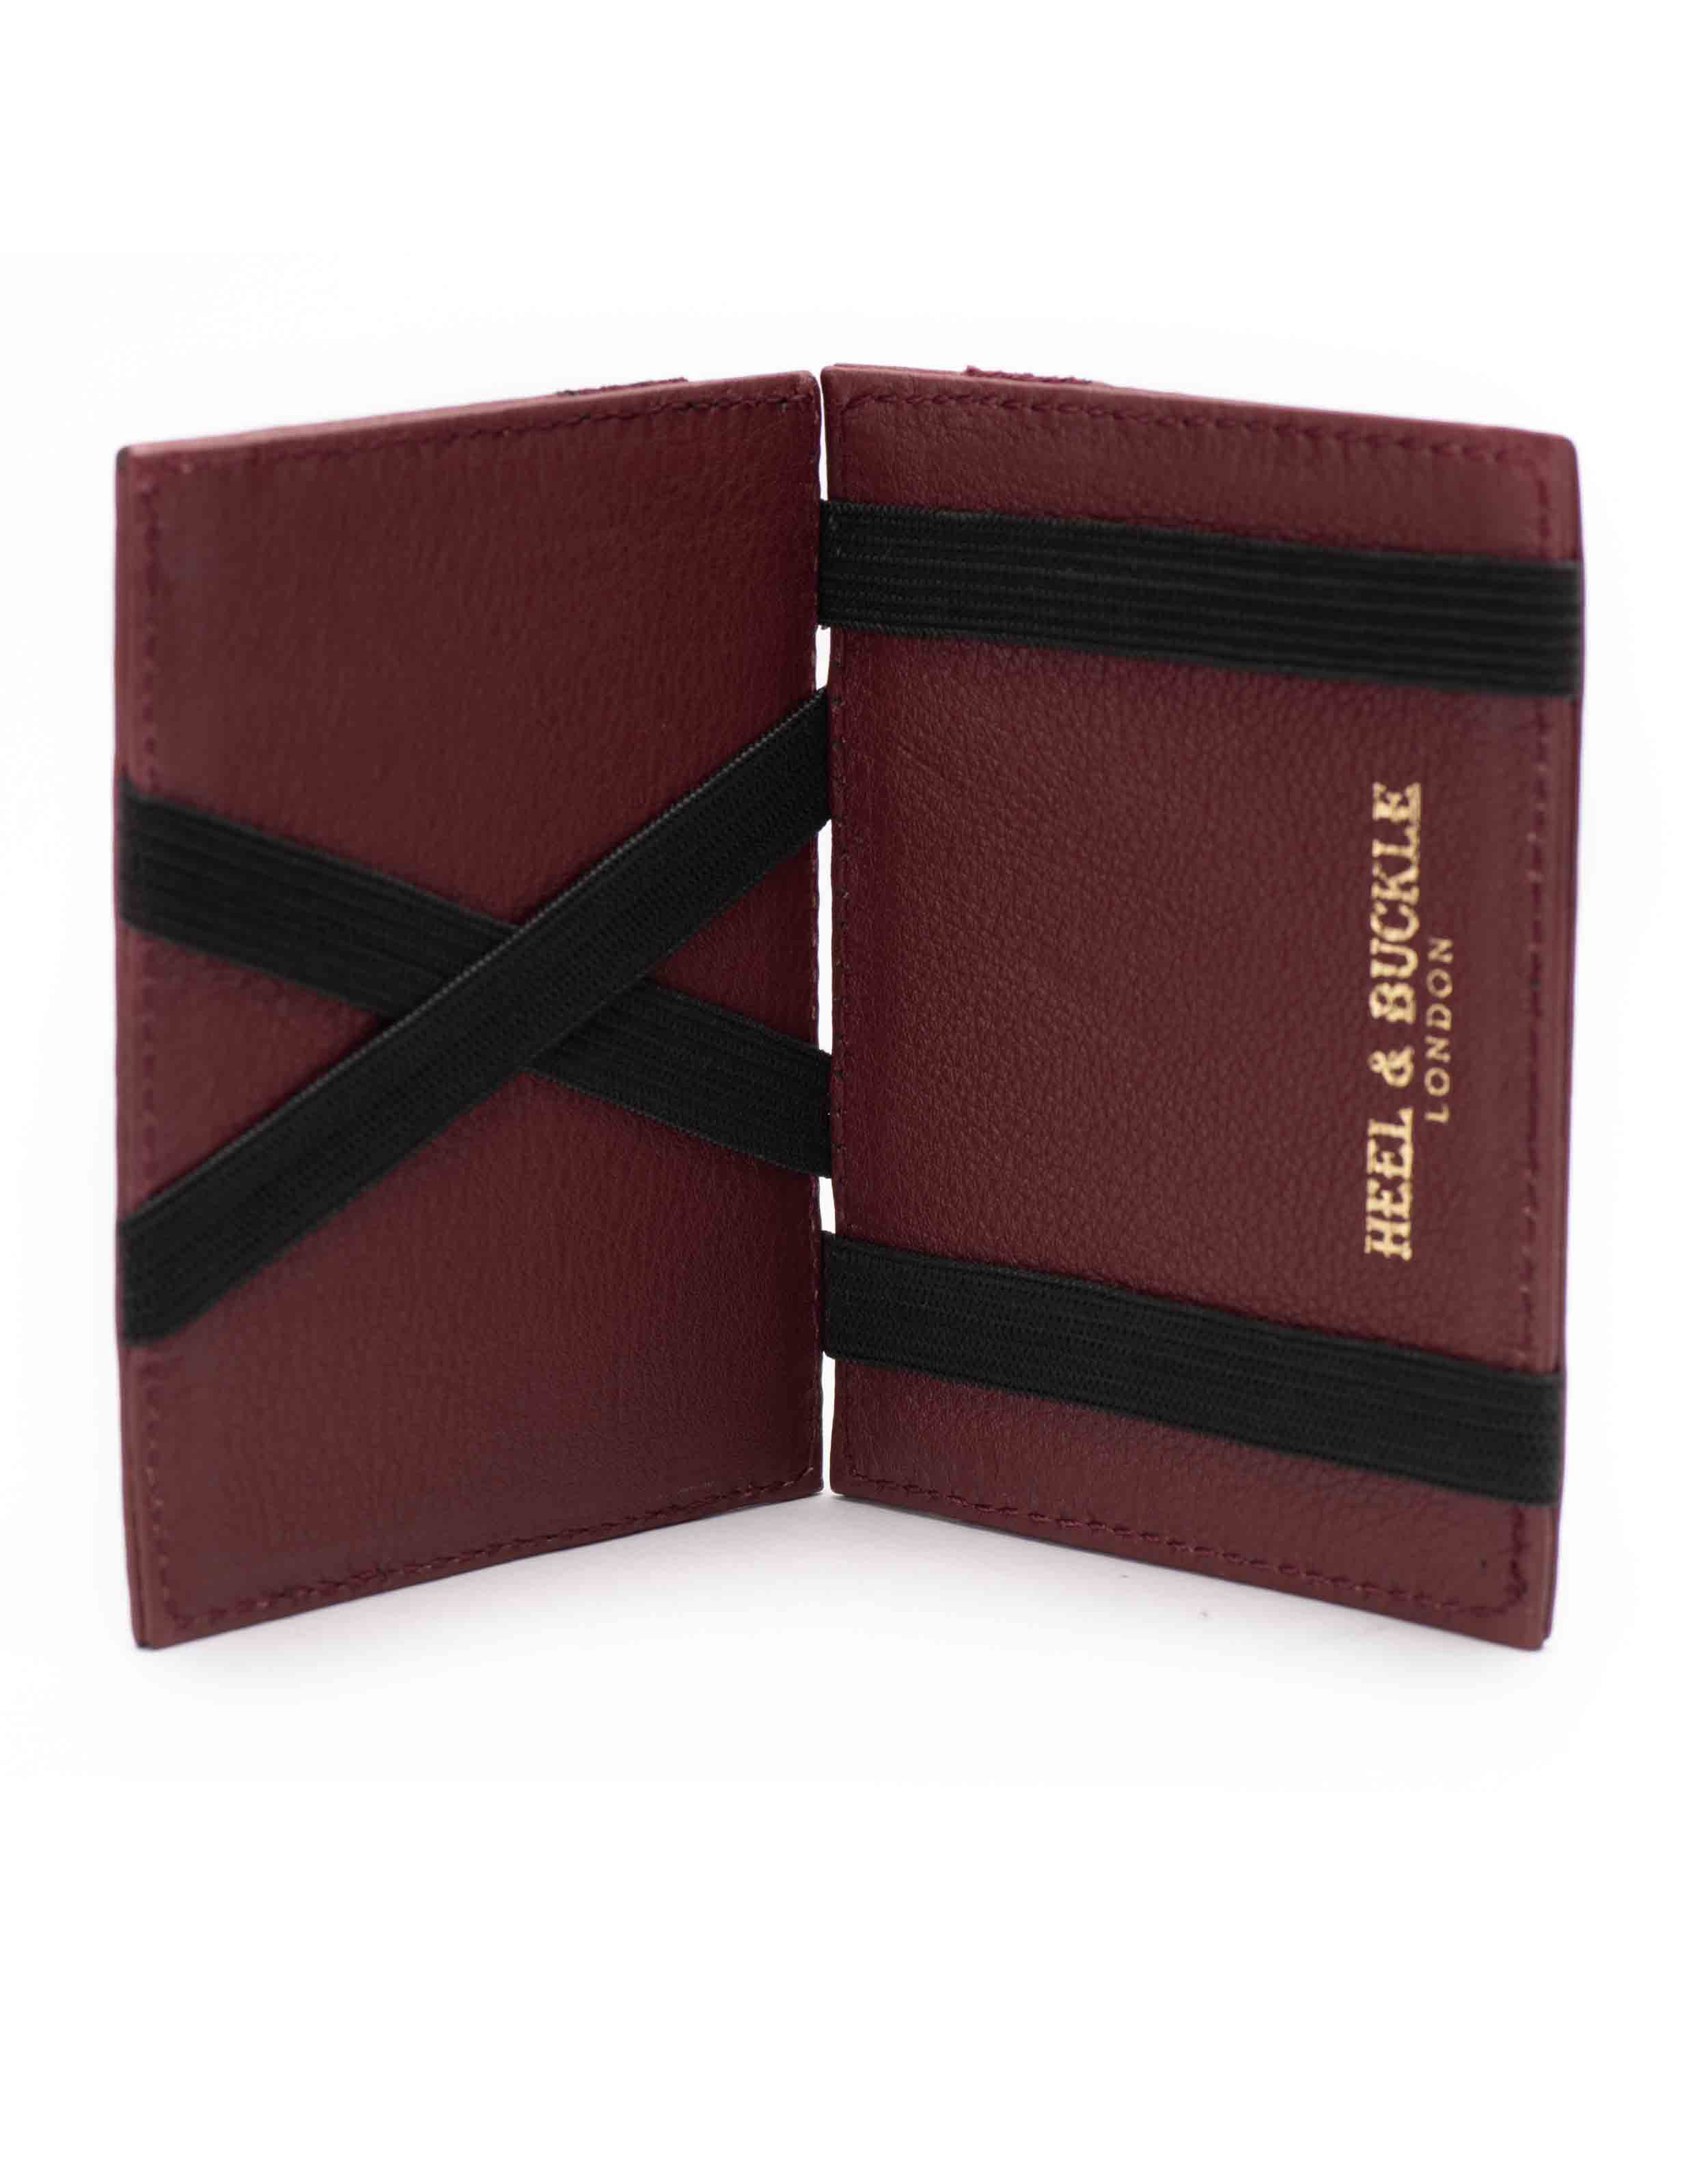 Burgundy Magic Wallet _ Luggage Tag Set4